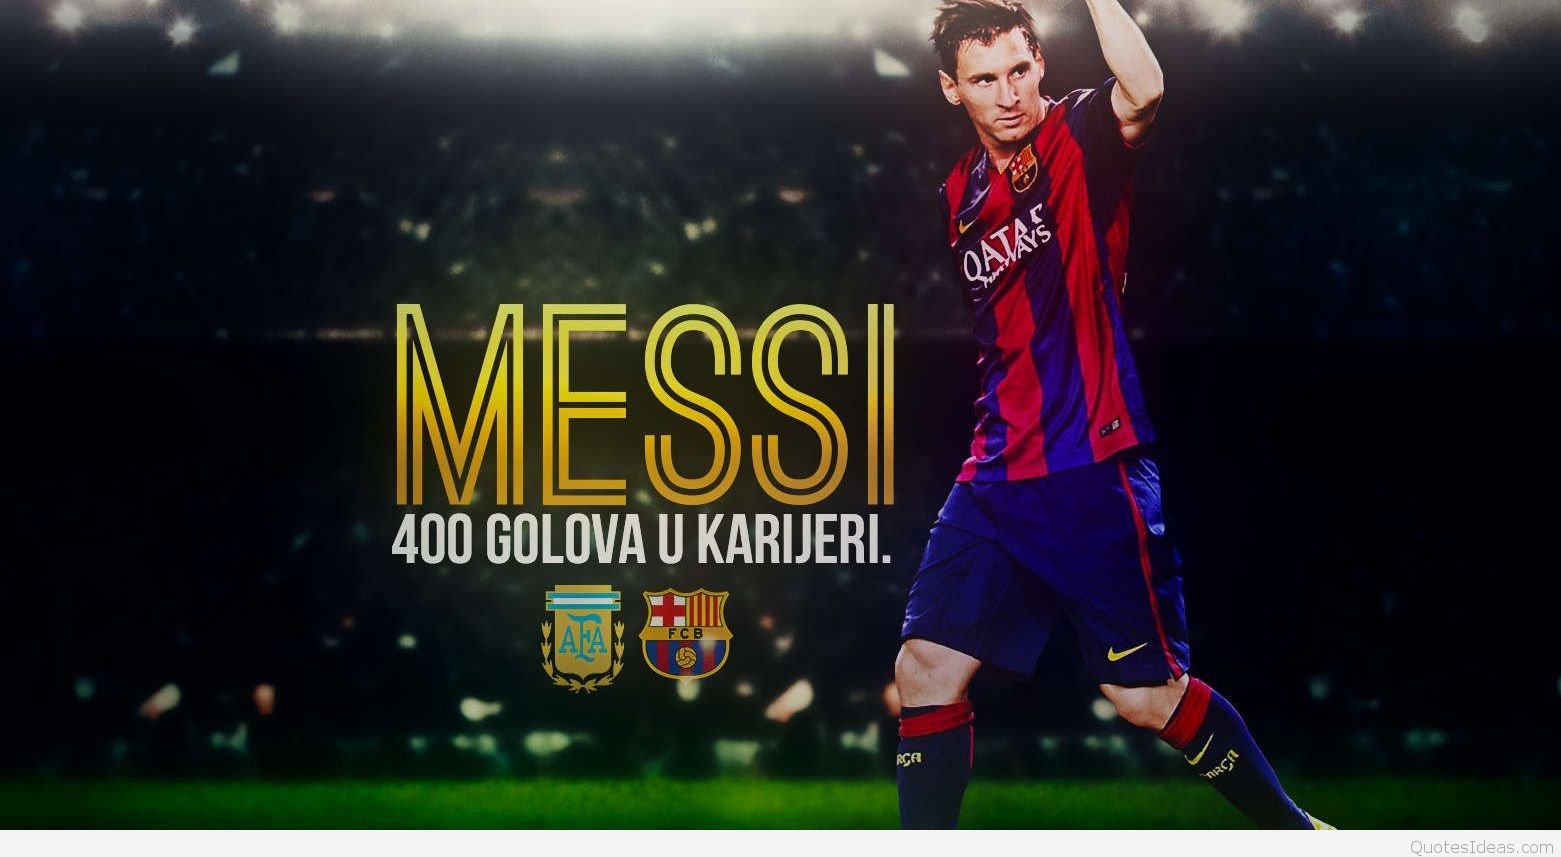 Messi images high quality 2